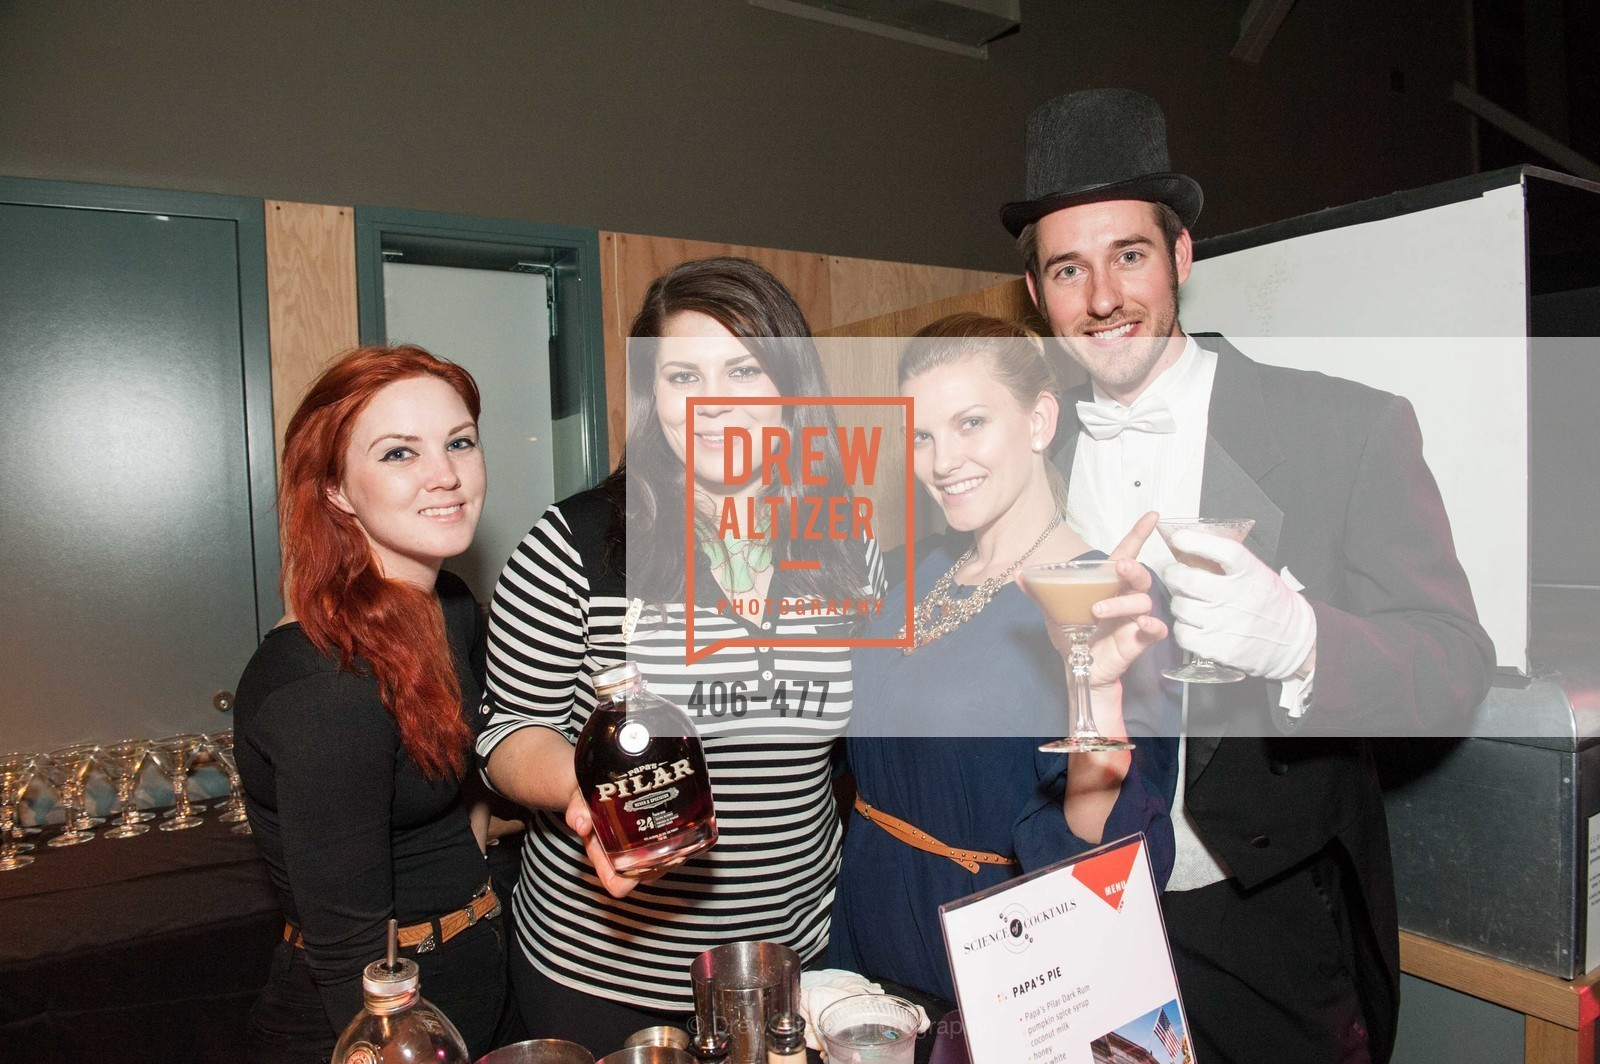 Elizabeth Fale, Jesse Lorraine, Jessica Choate, Thomas Jefferson, THE EXPLORATORIUM LAB Presents 2014 Science of Cocktails, US. US, January 24th, 2014,Drew Altizer, Drew Altizer Photography, full-service agency, private events, San Francisco photographer, photographer california